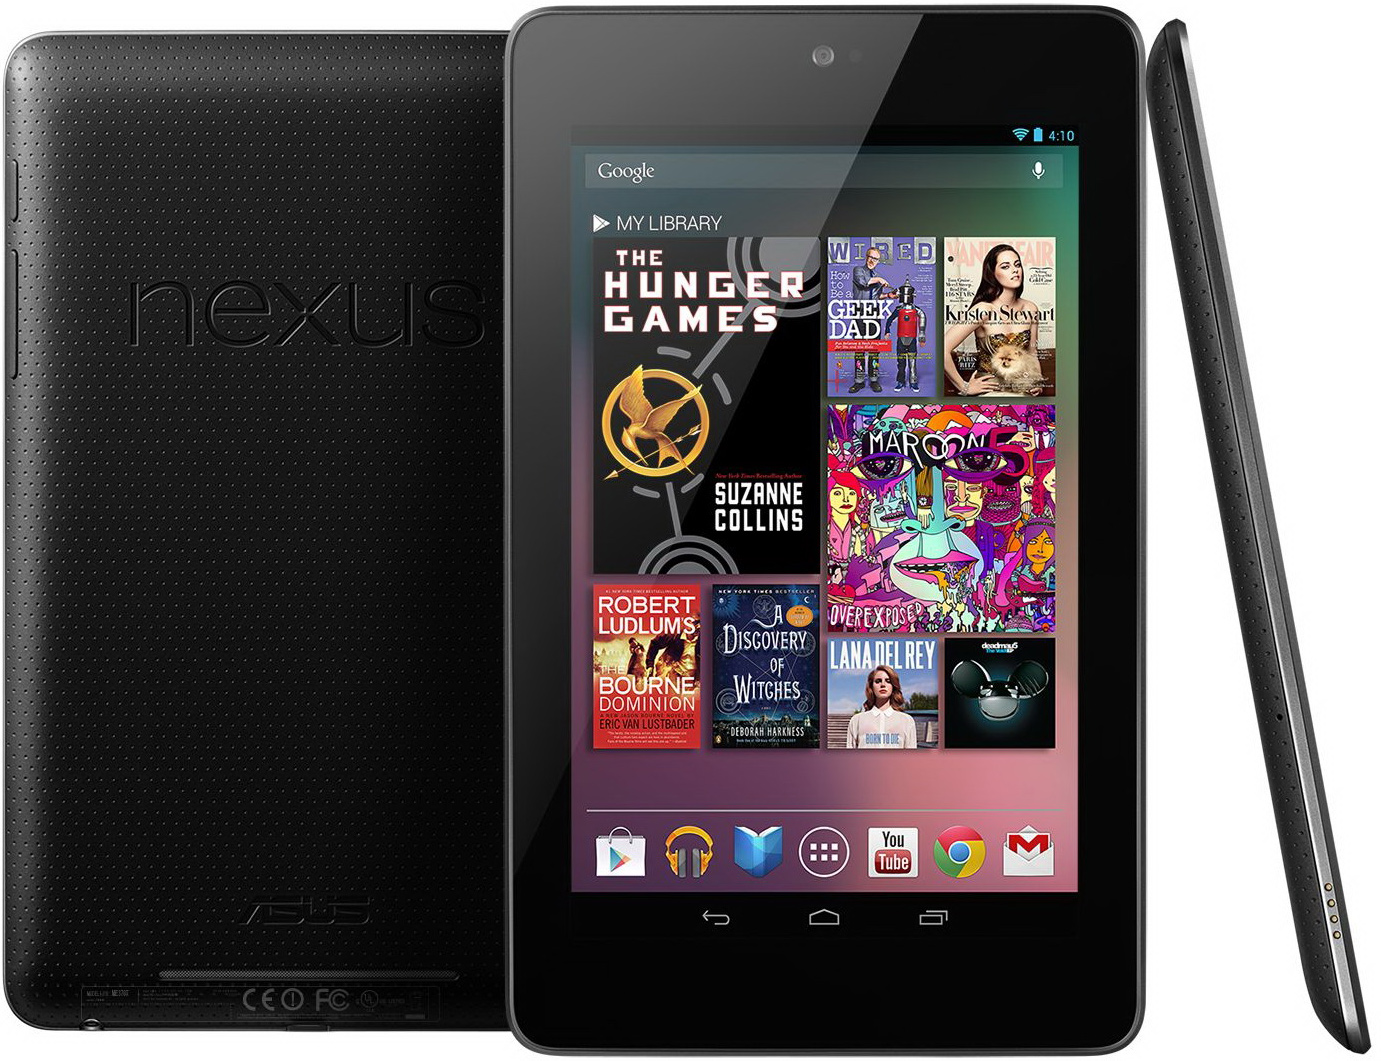 The Asus-made Nexus 7, Android 4.1's launch device.